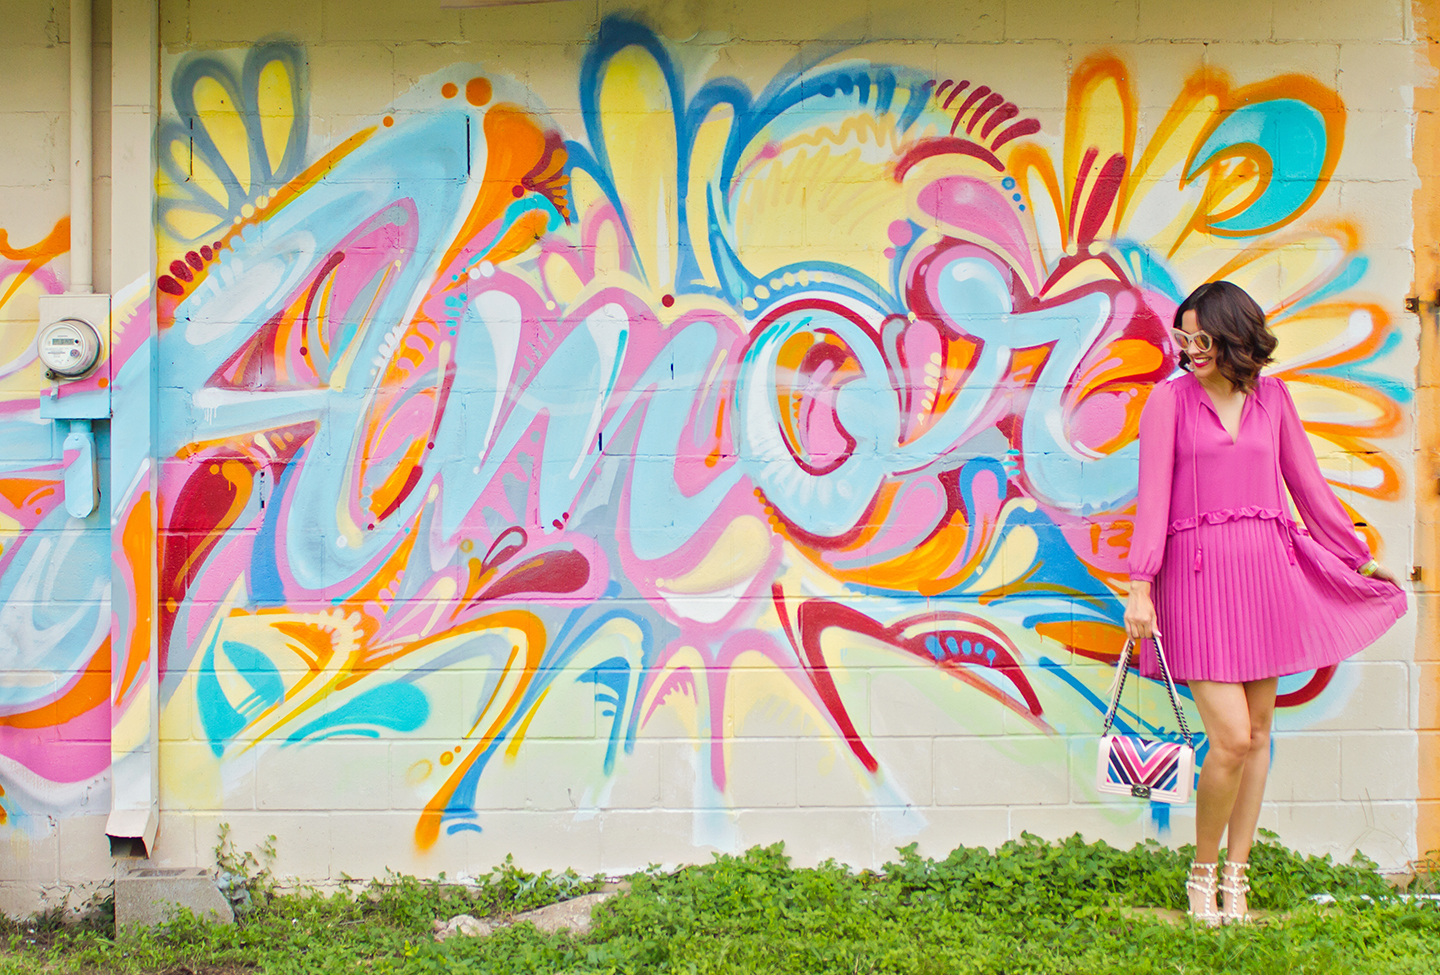 the most comprehensive guide to houston's colorful walls - carrie